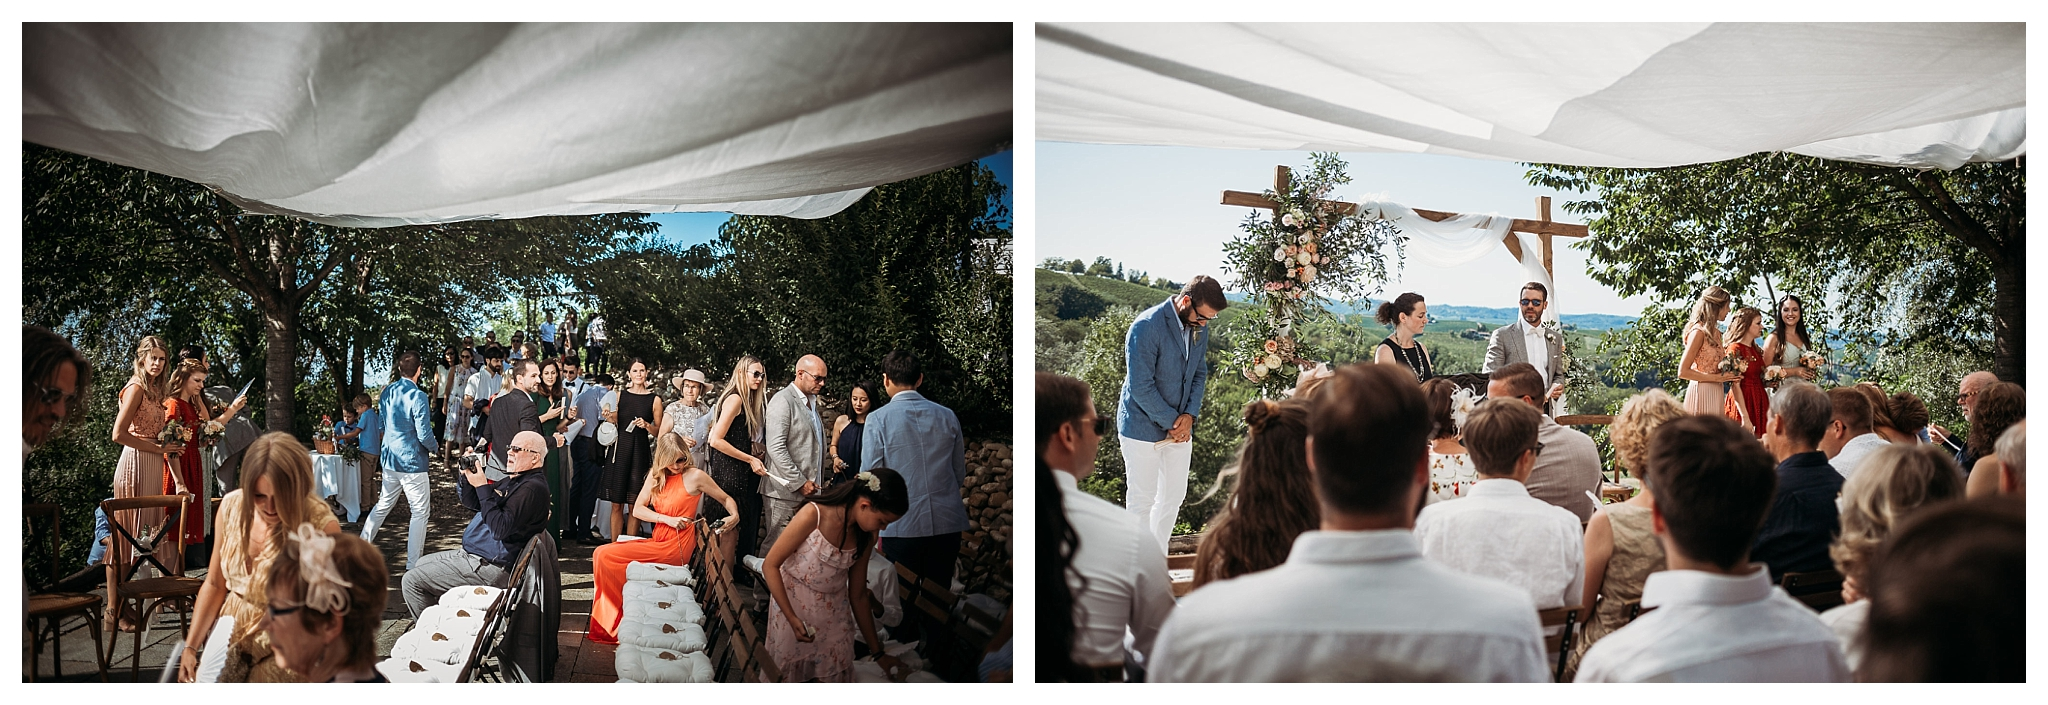 Outside civil wedding with a view on the hills in Italy